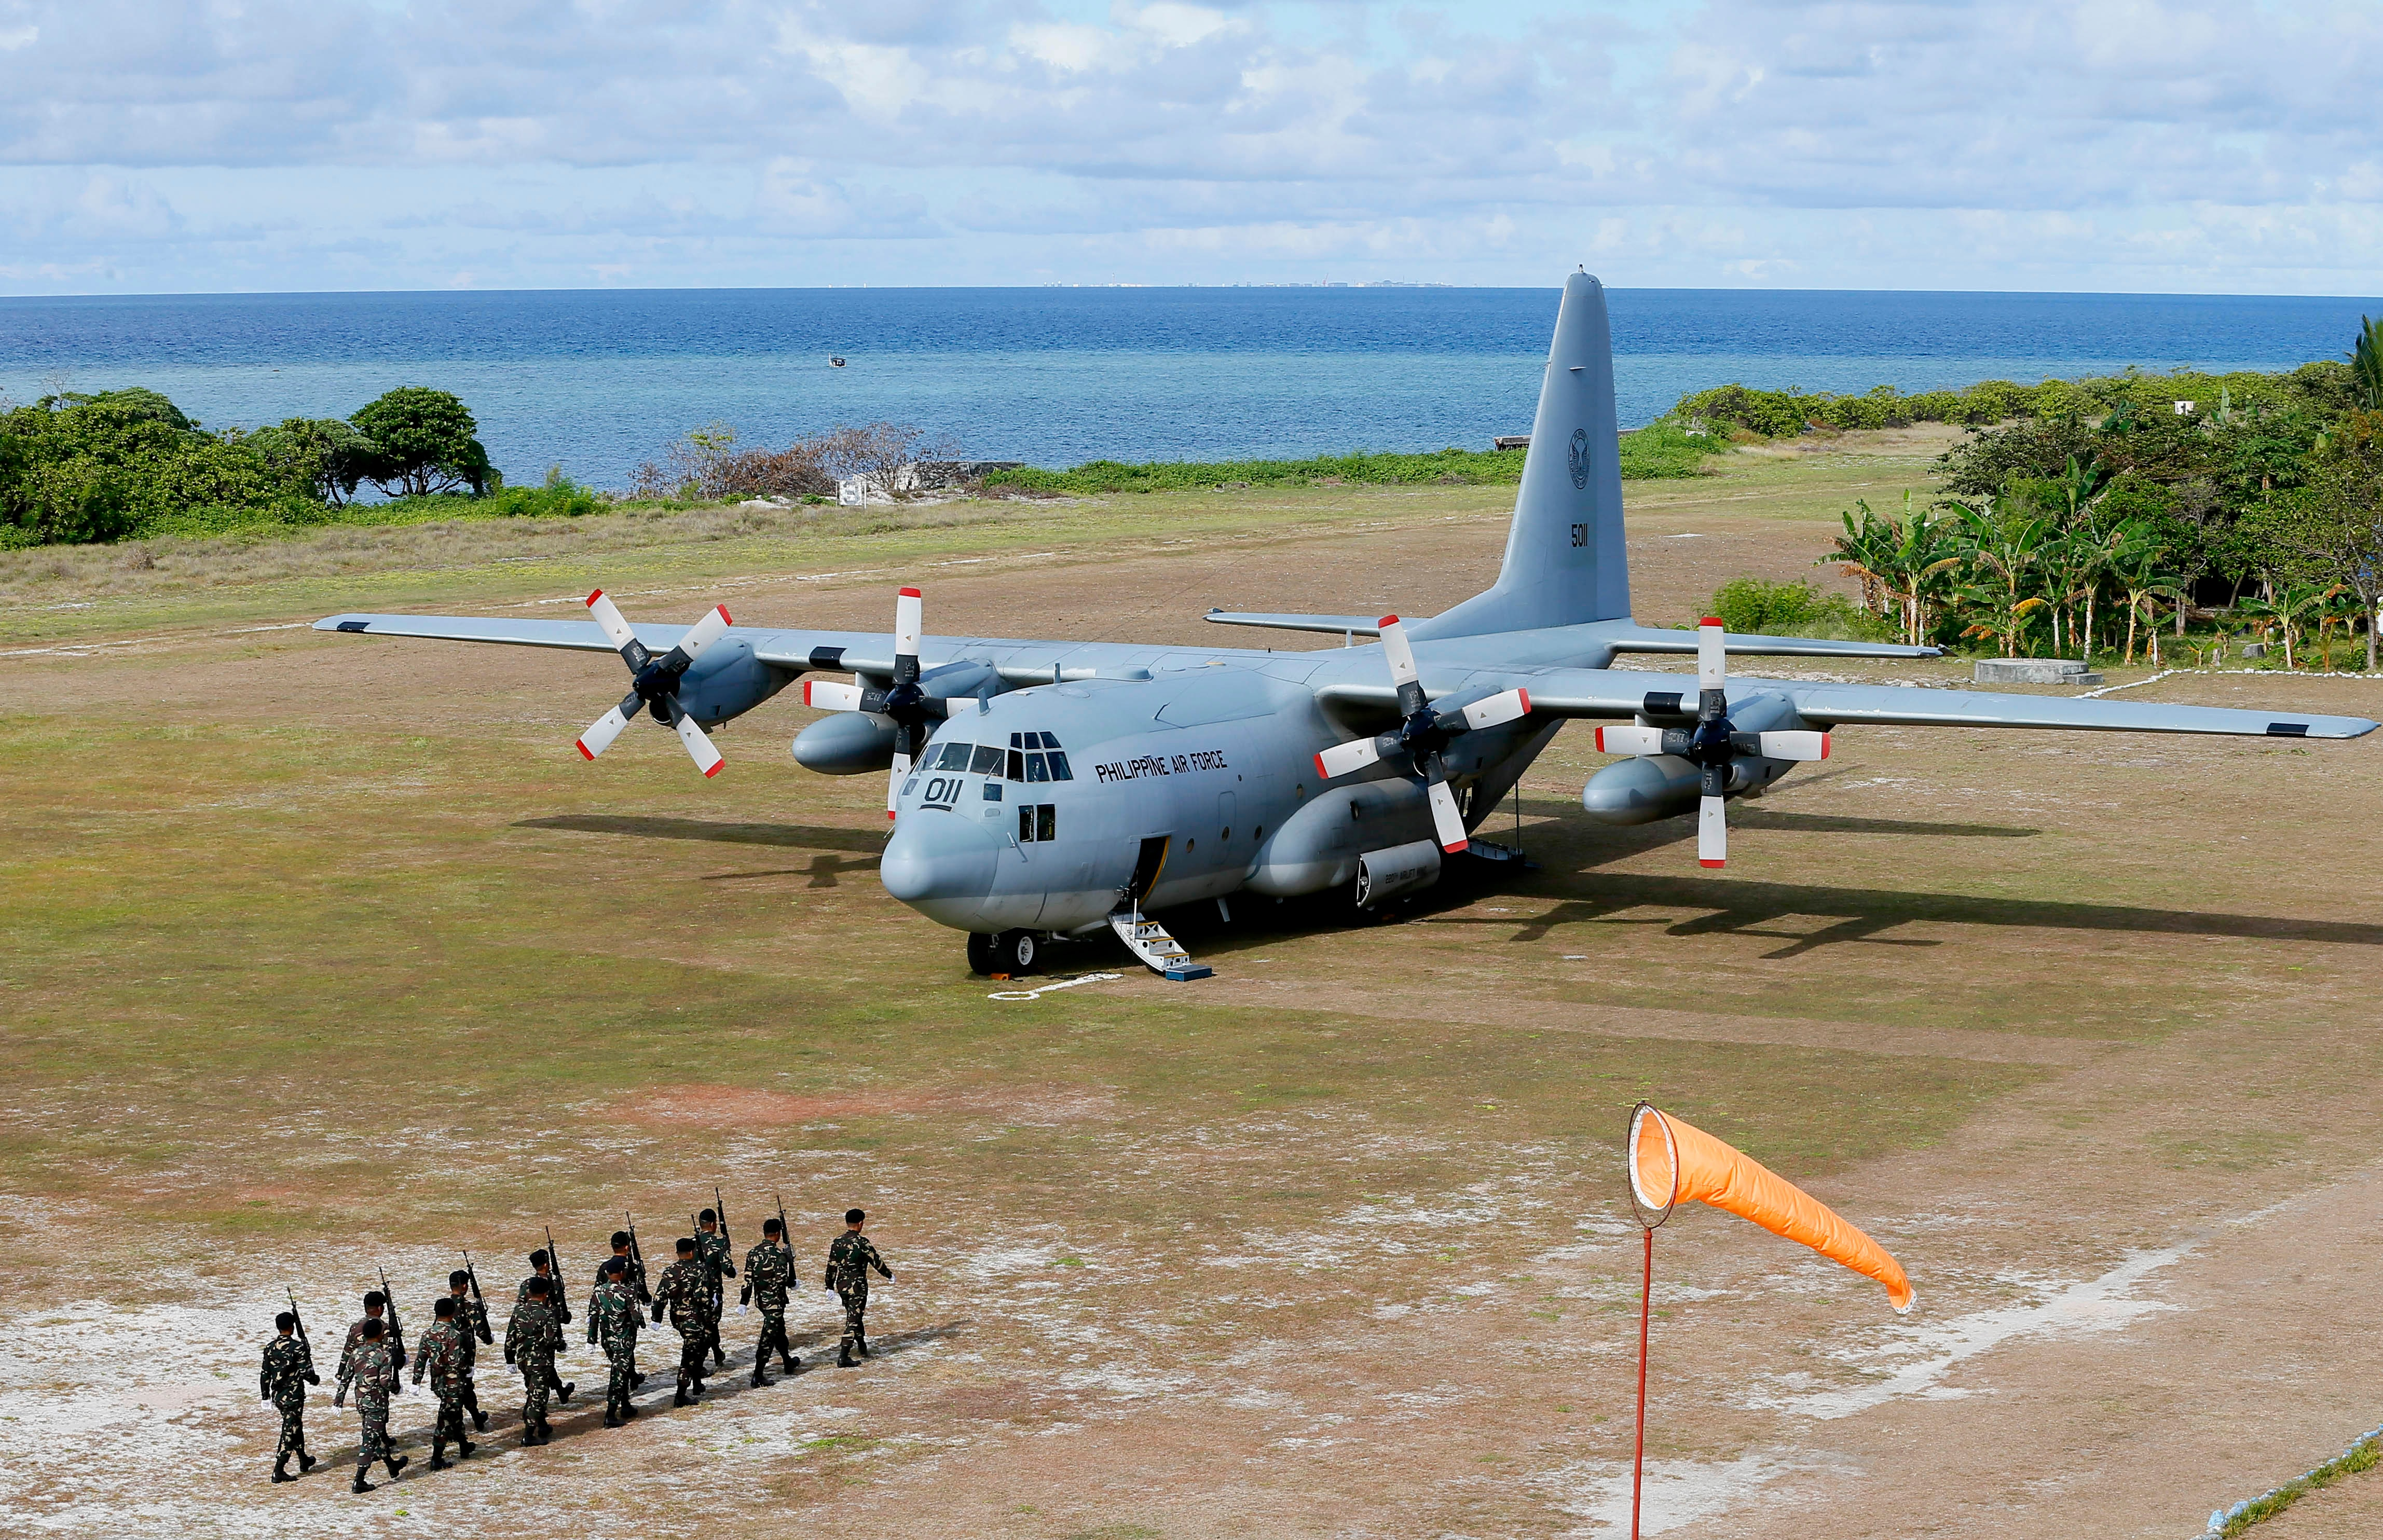 Defense chief on Philippine-occupied island in disputed seas